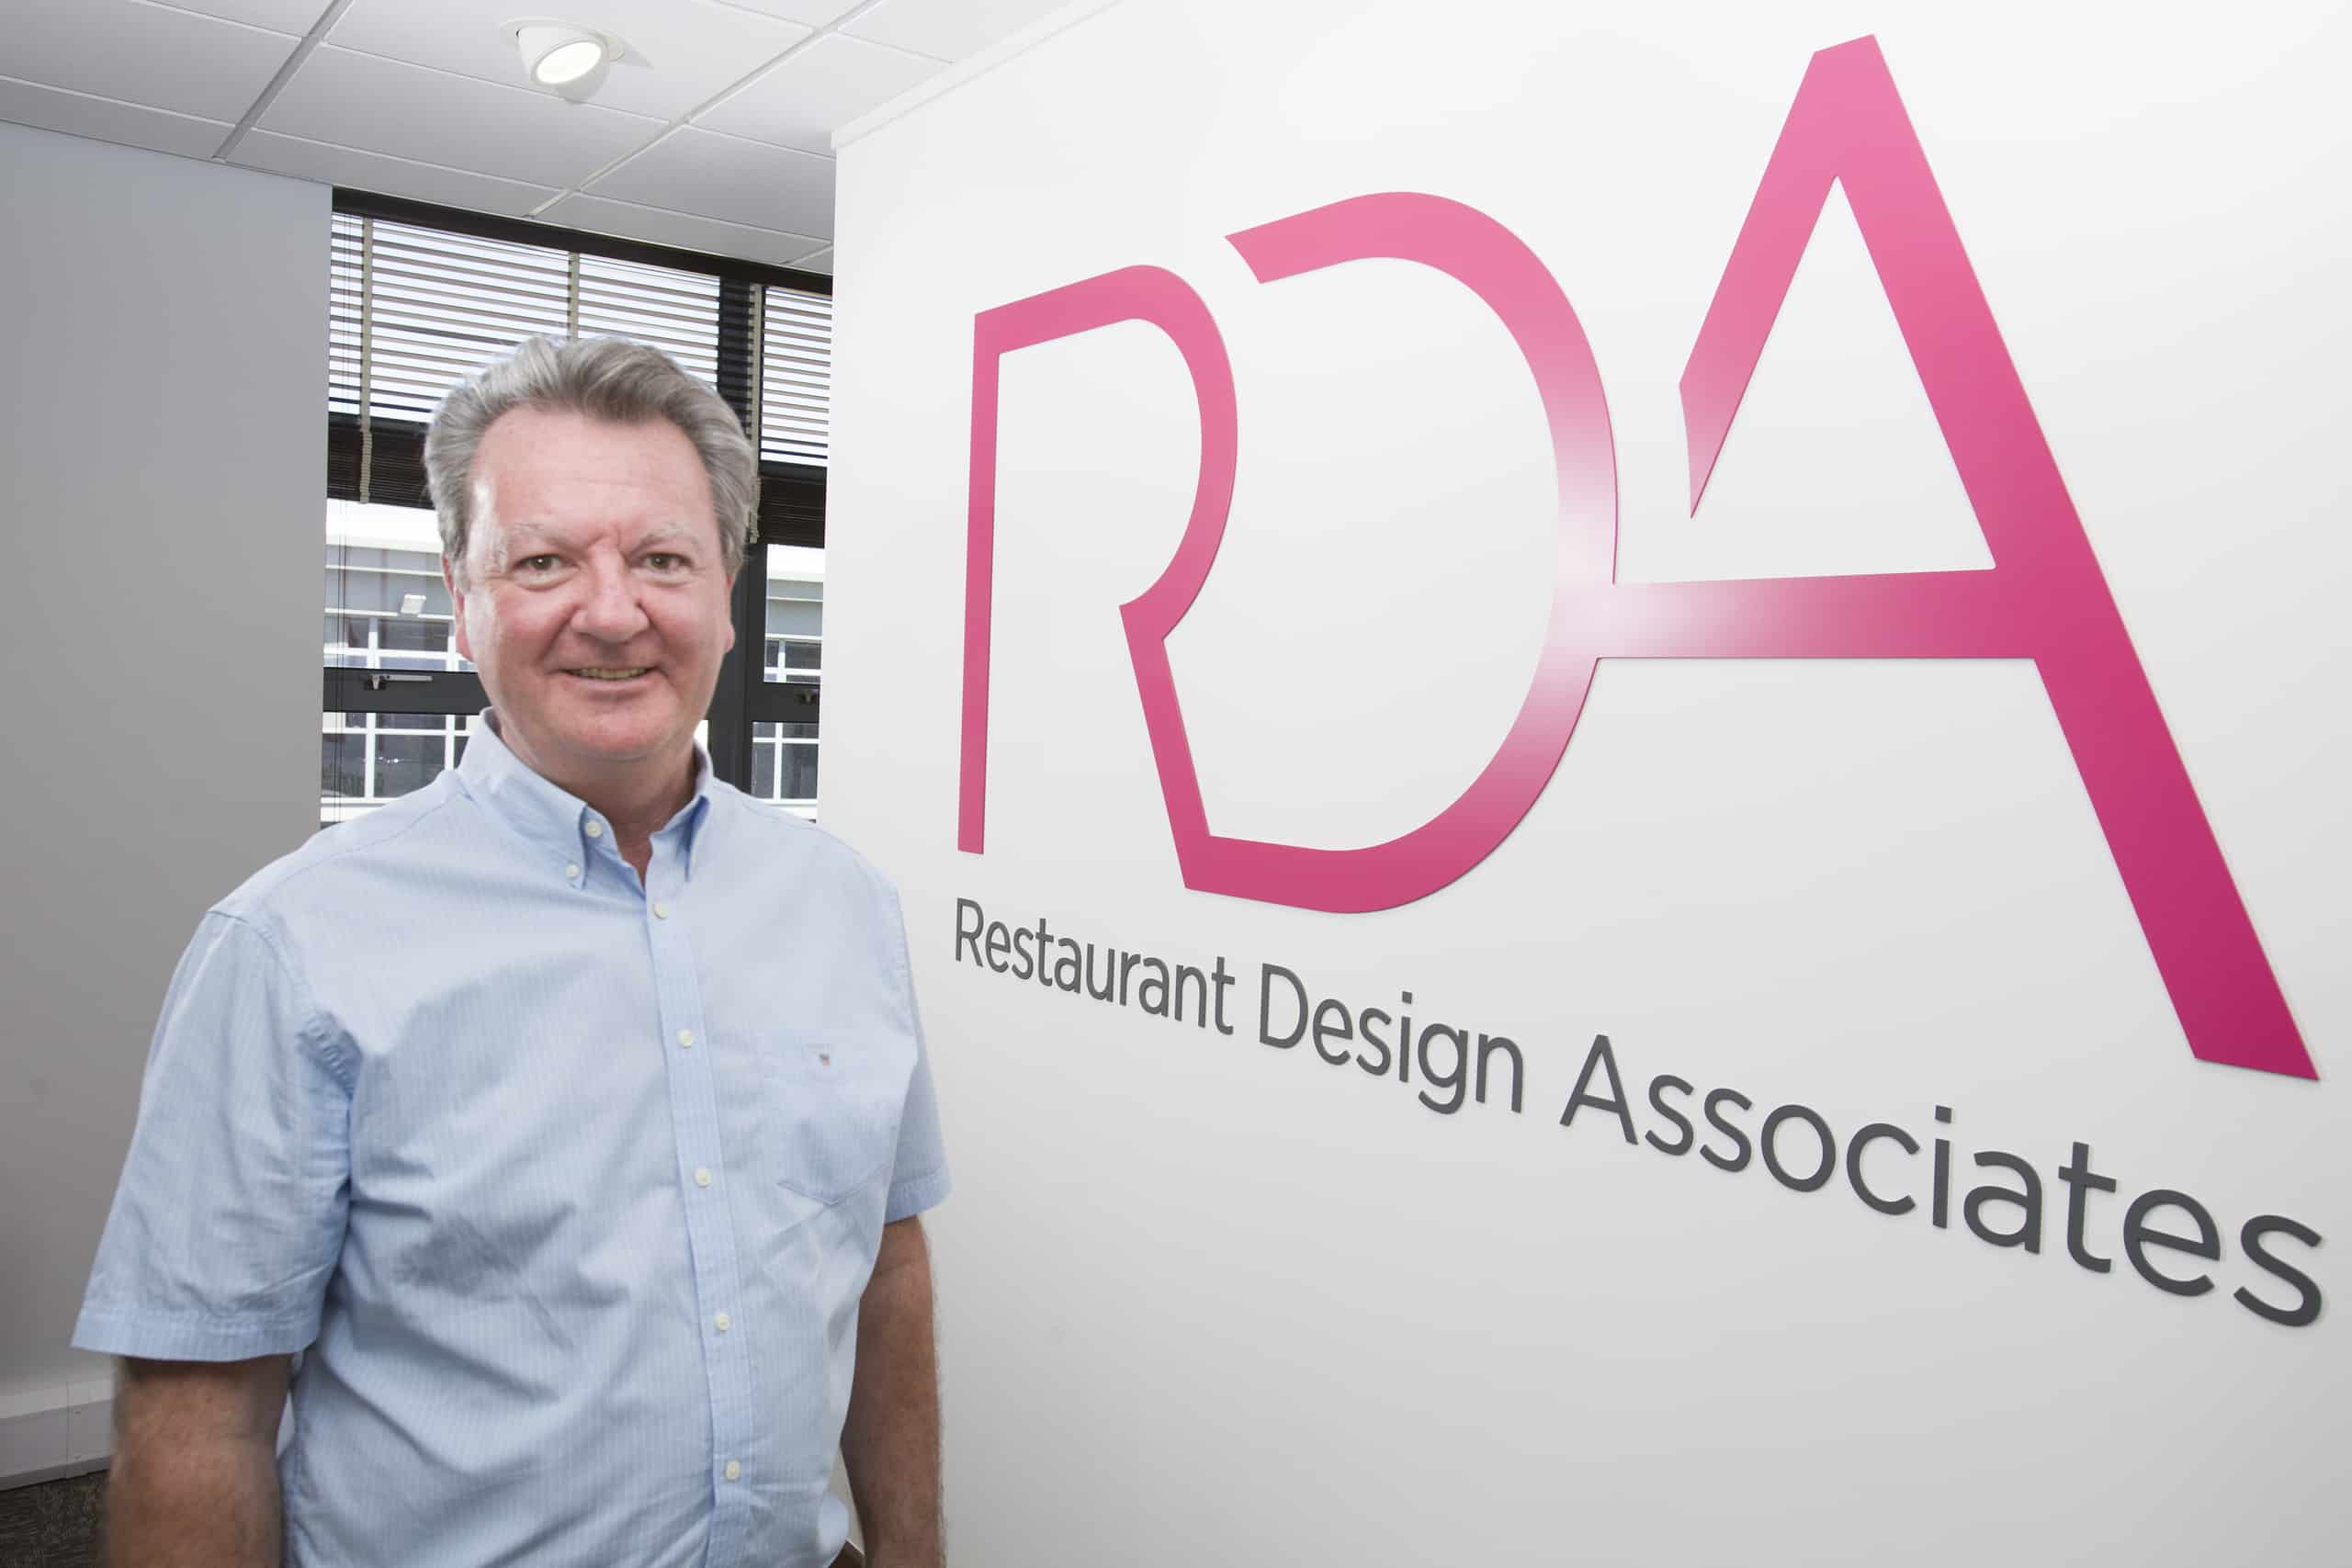 RDA appoints new Senior Consultant due to continued growth